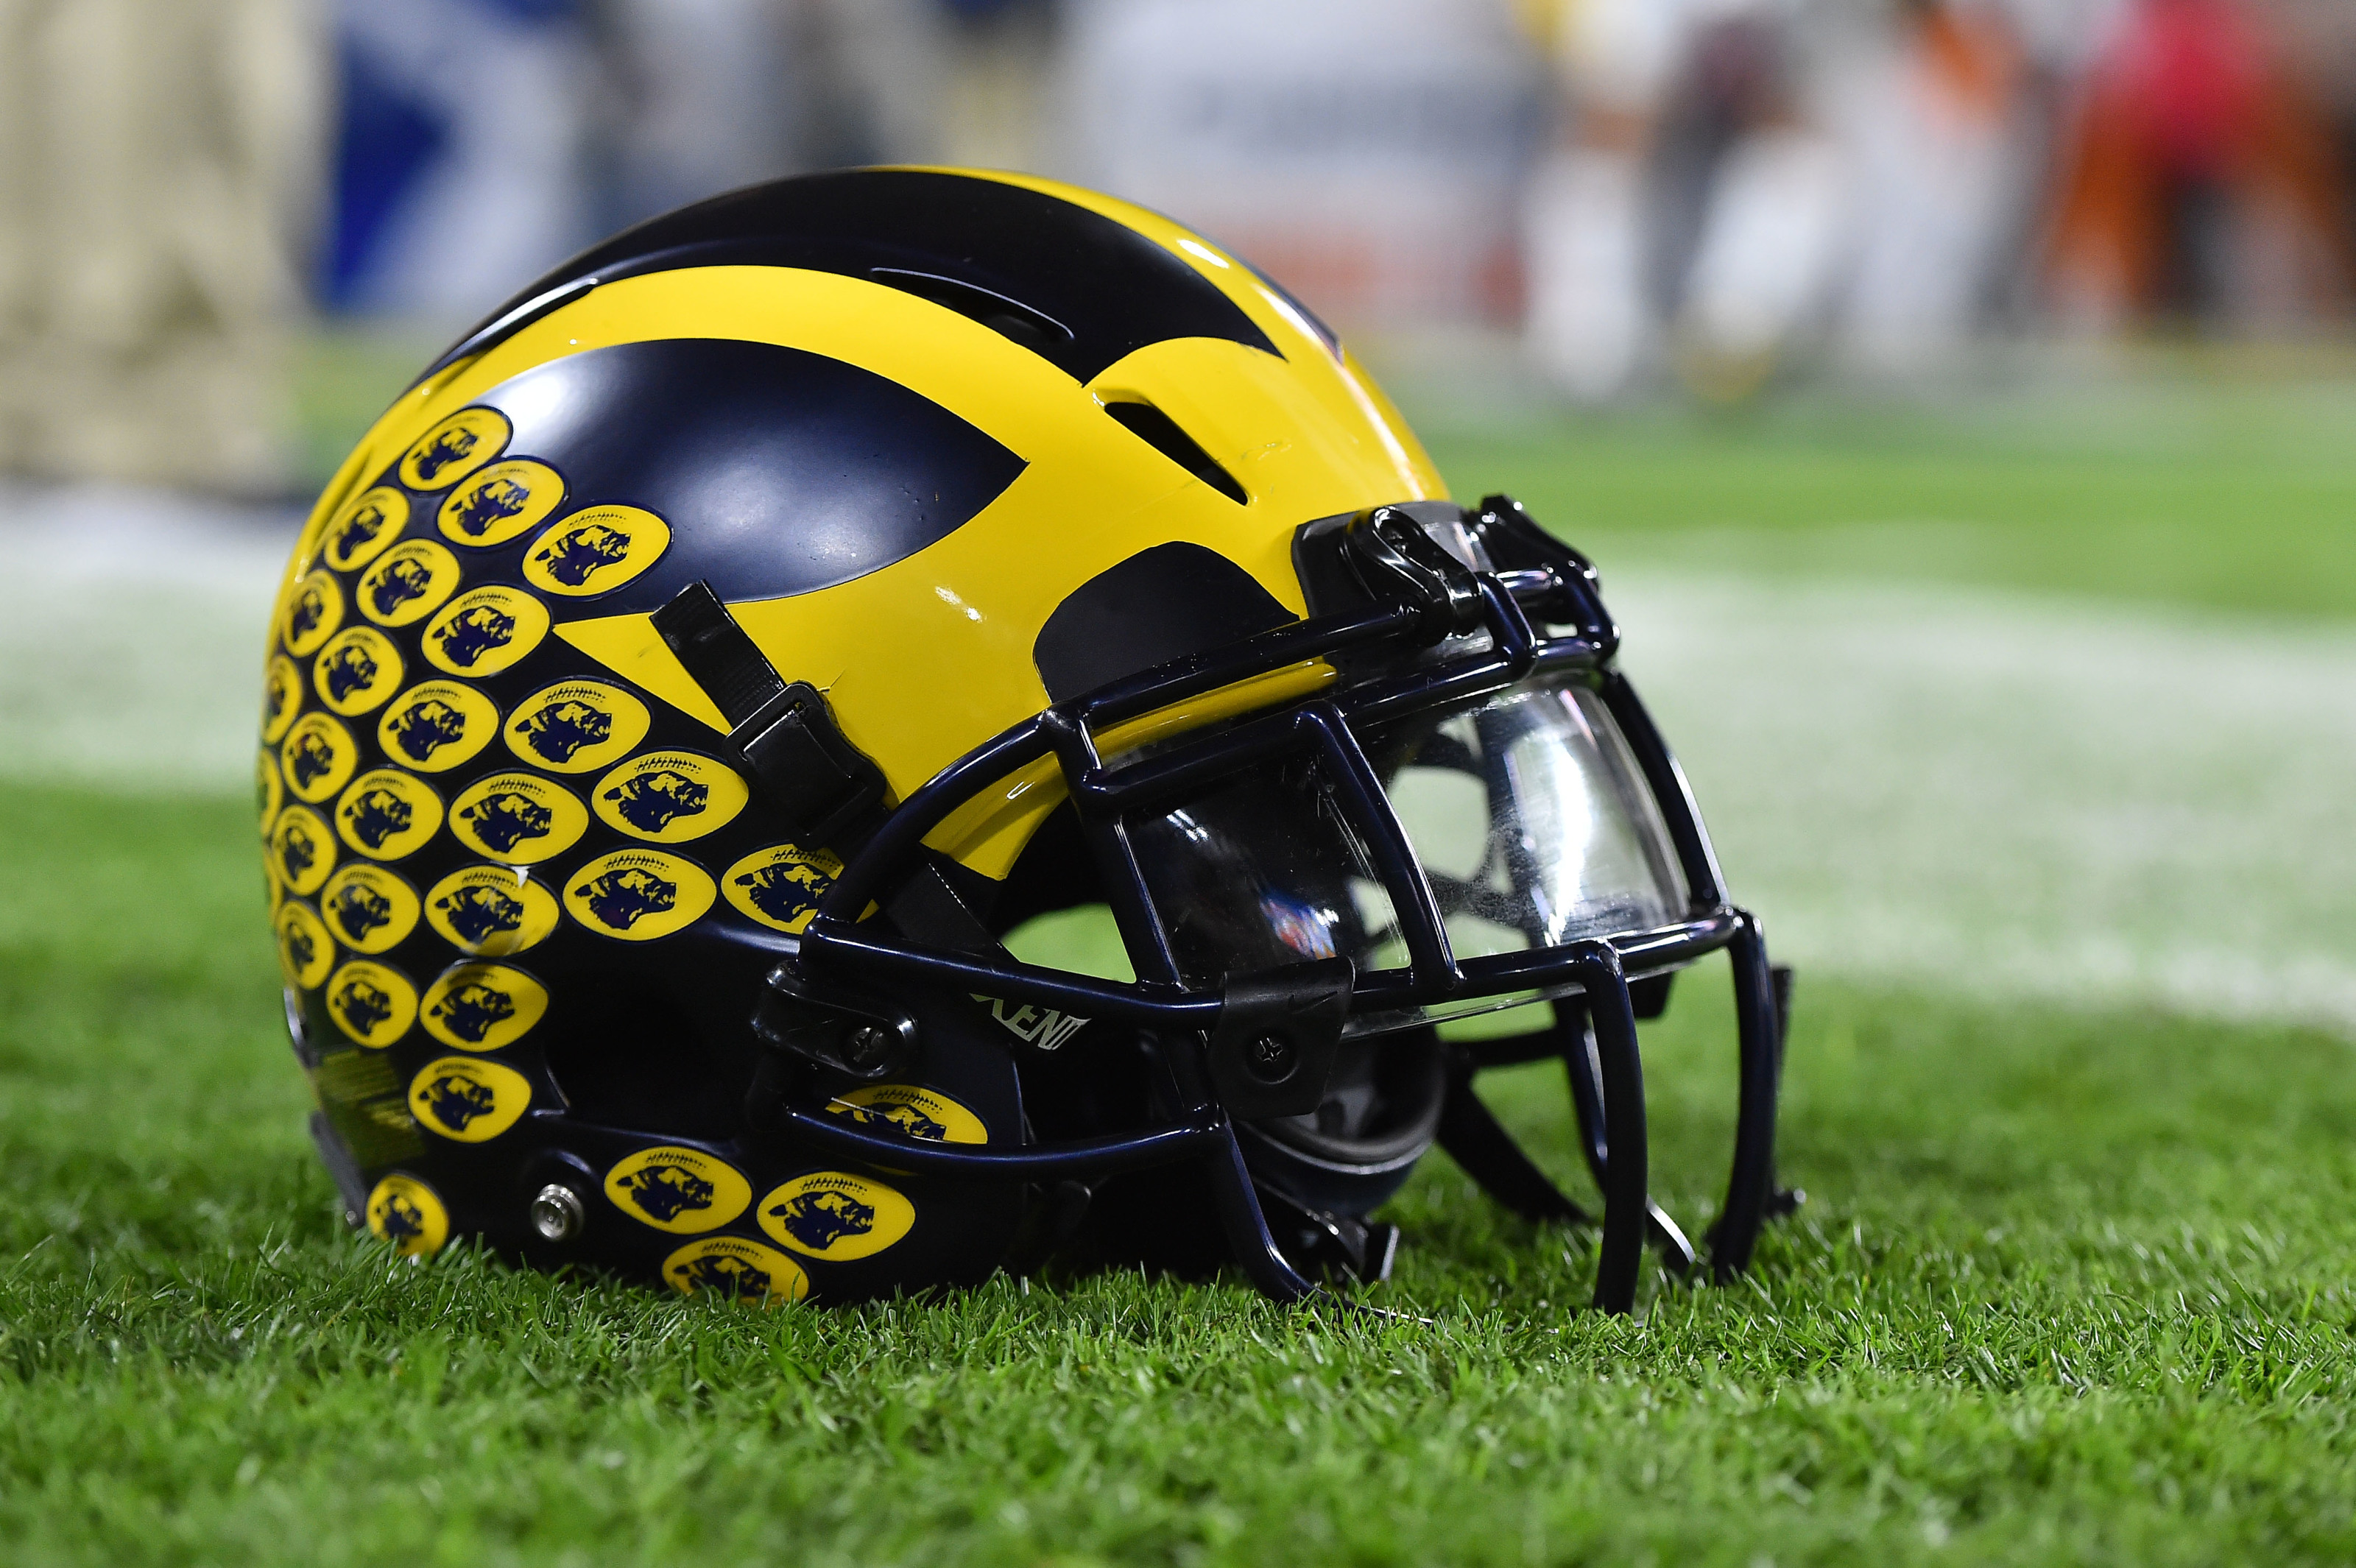 Michigan football helmets to include 'EQUALITY' decal with 6 raised fists  (Photo)